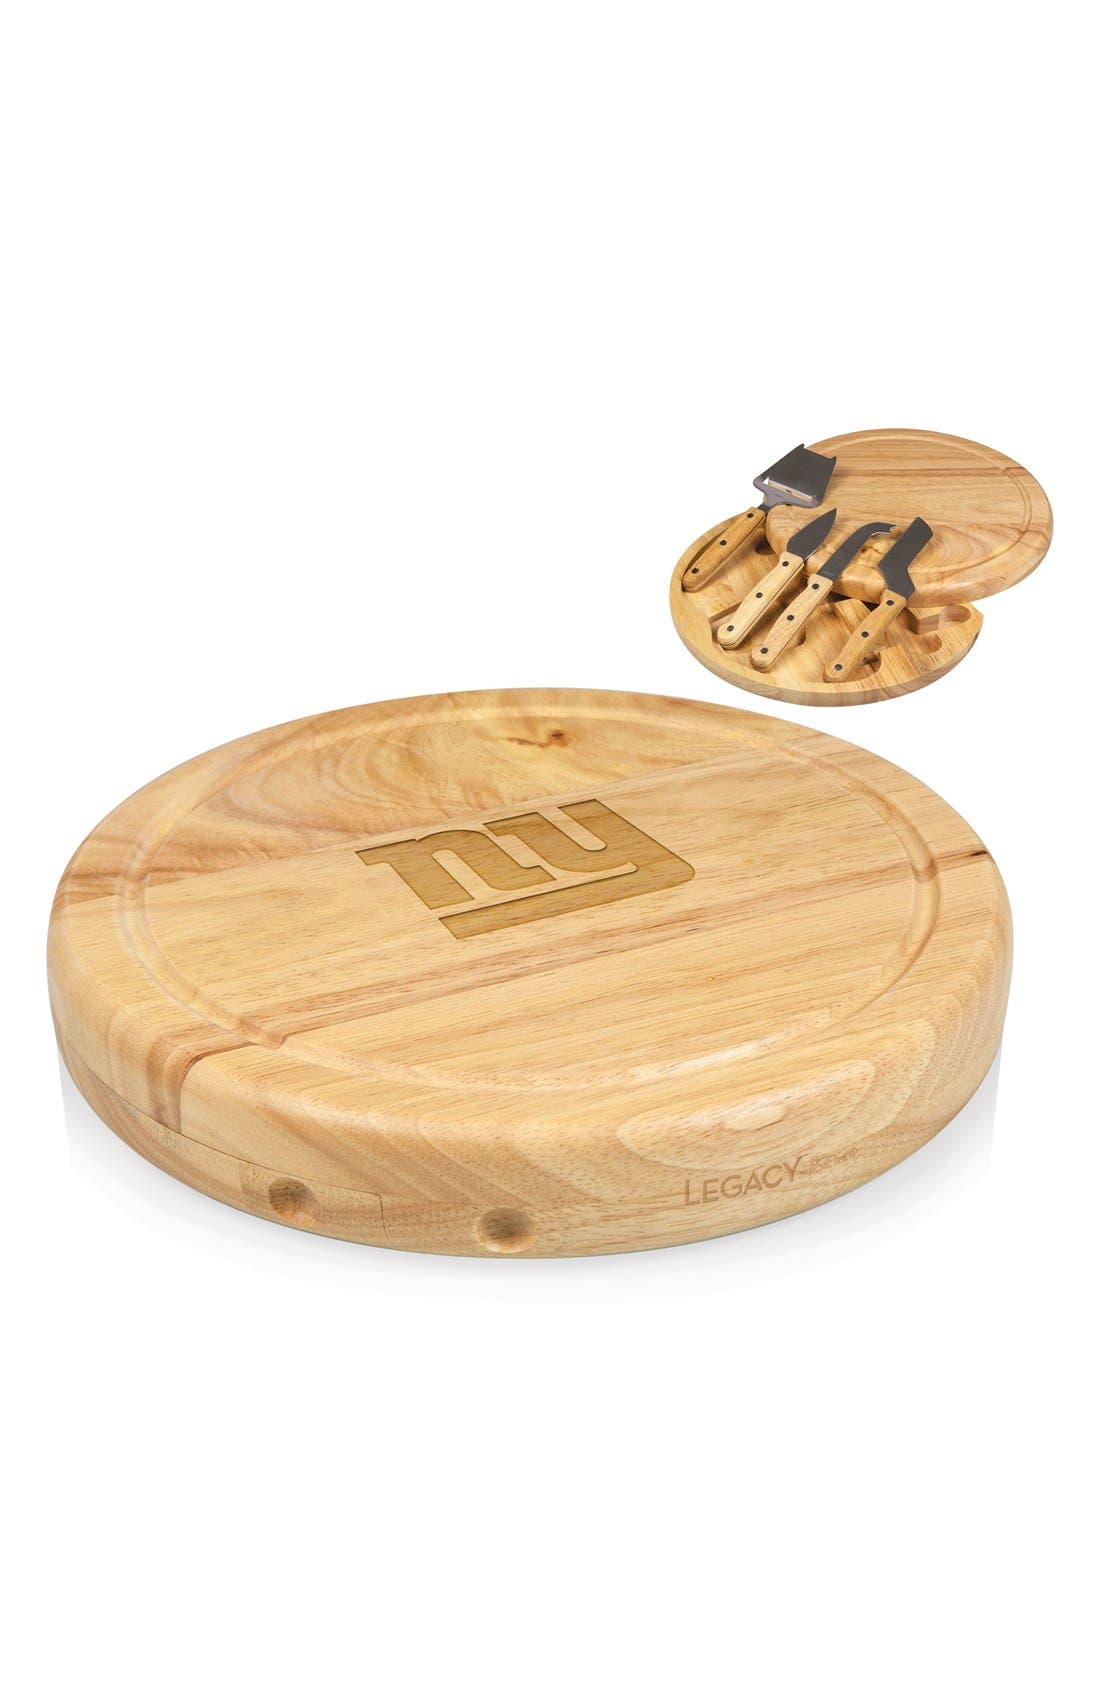 'Circo' 5-Piece NFL Engraved Cheese Board & Knives Set,                             Alternate thumbnail 3, color,                             220